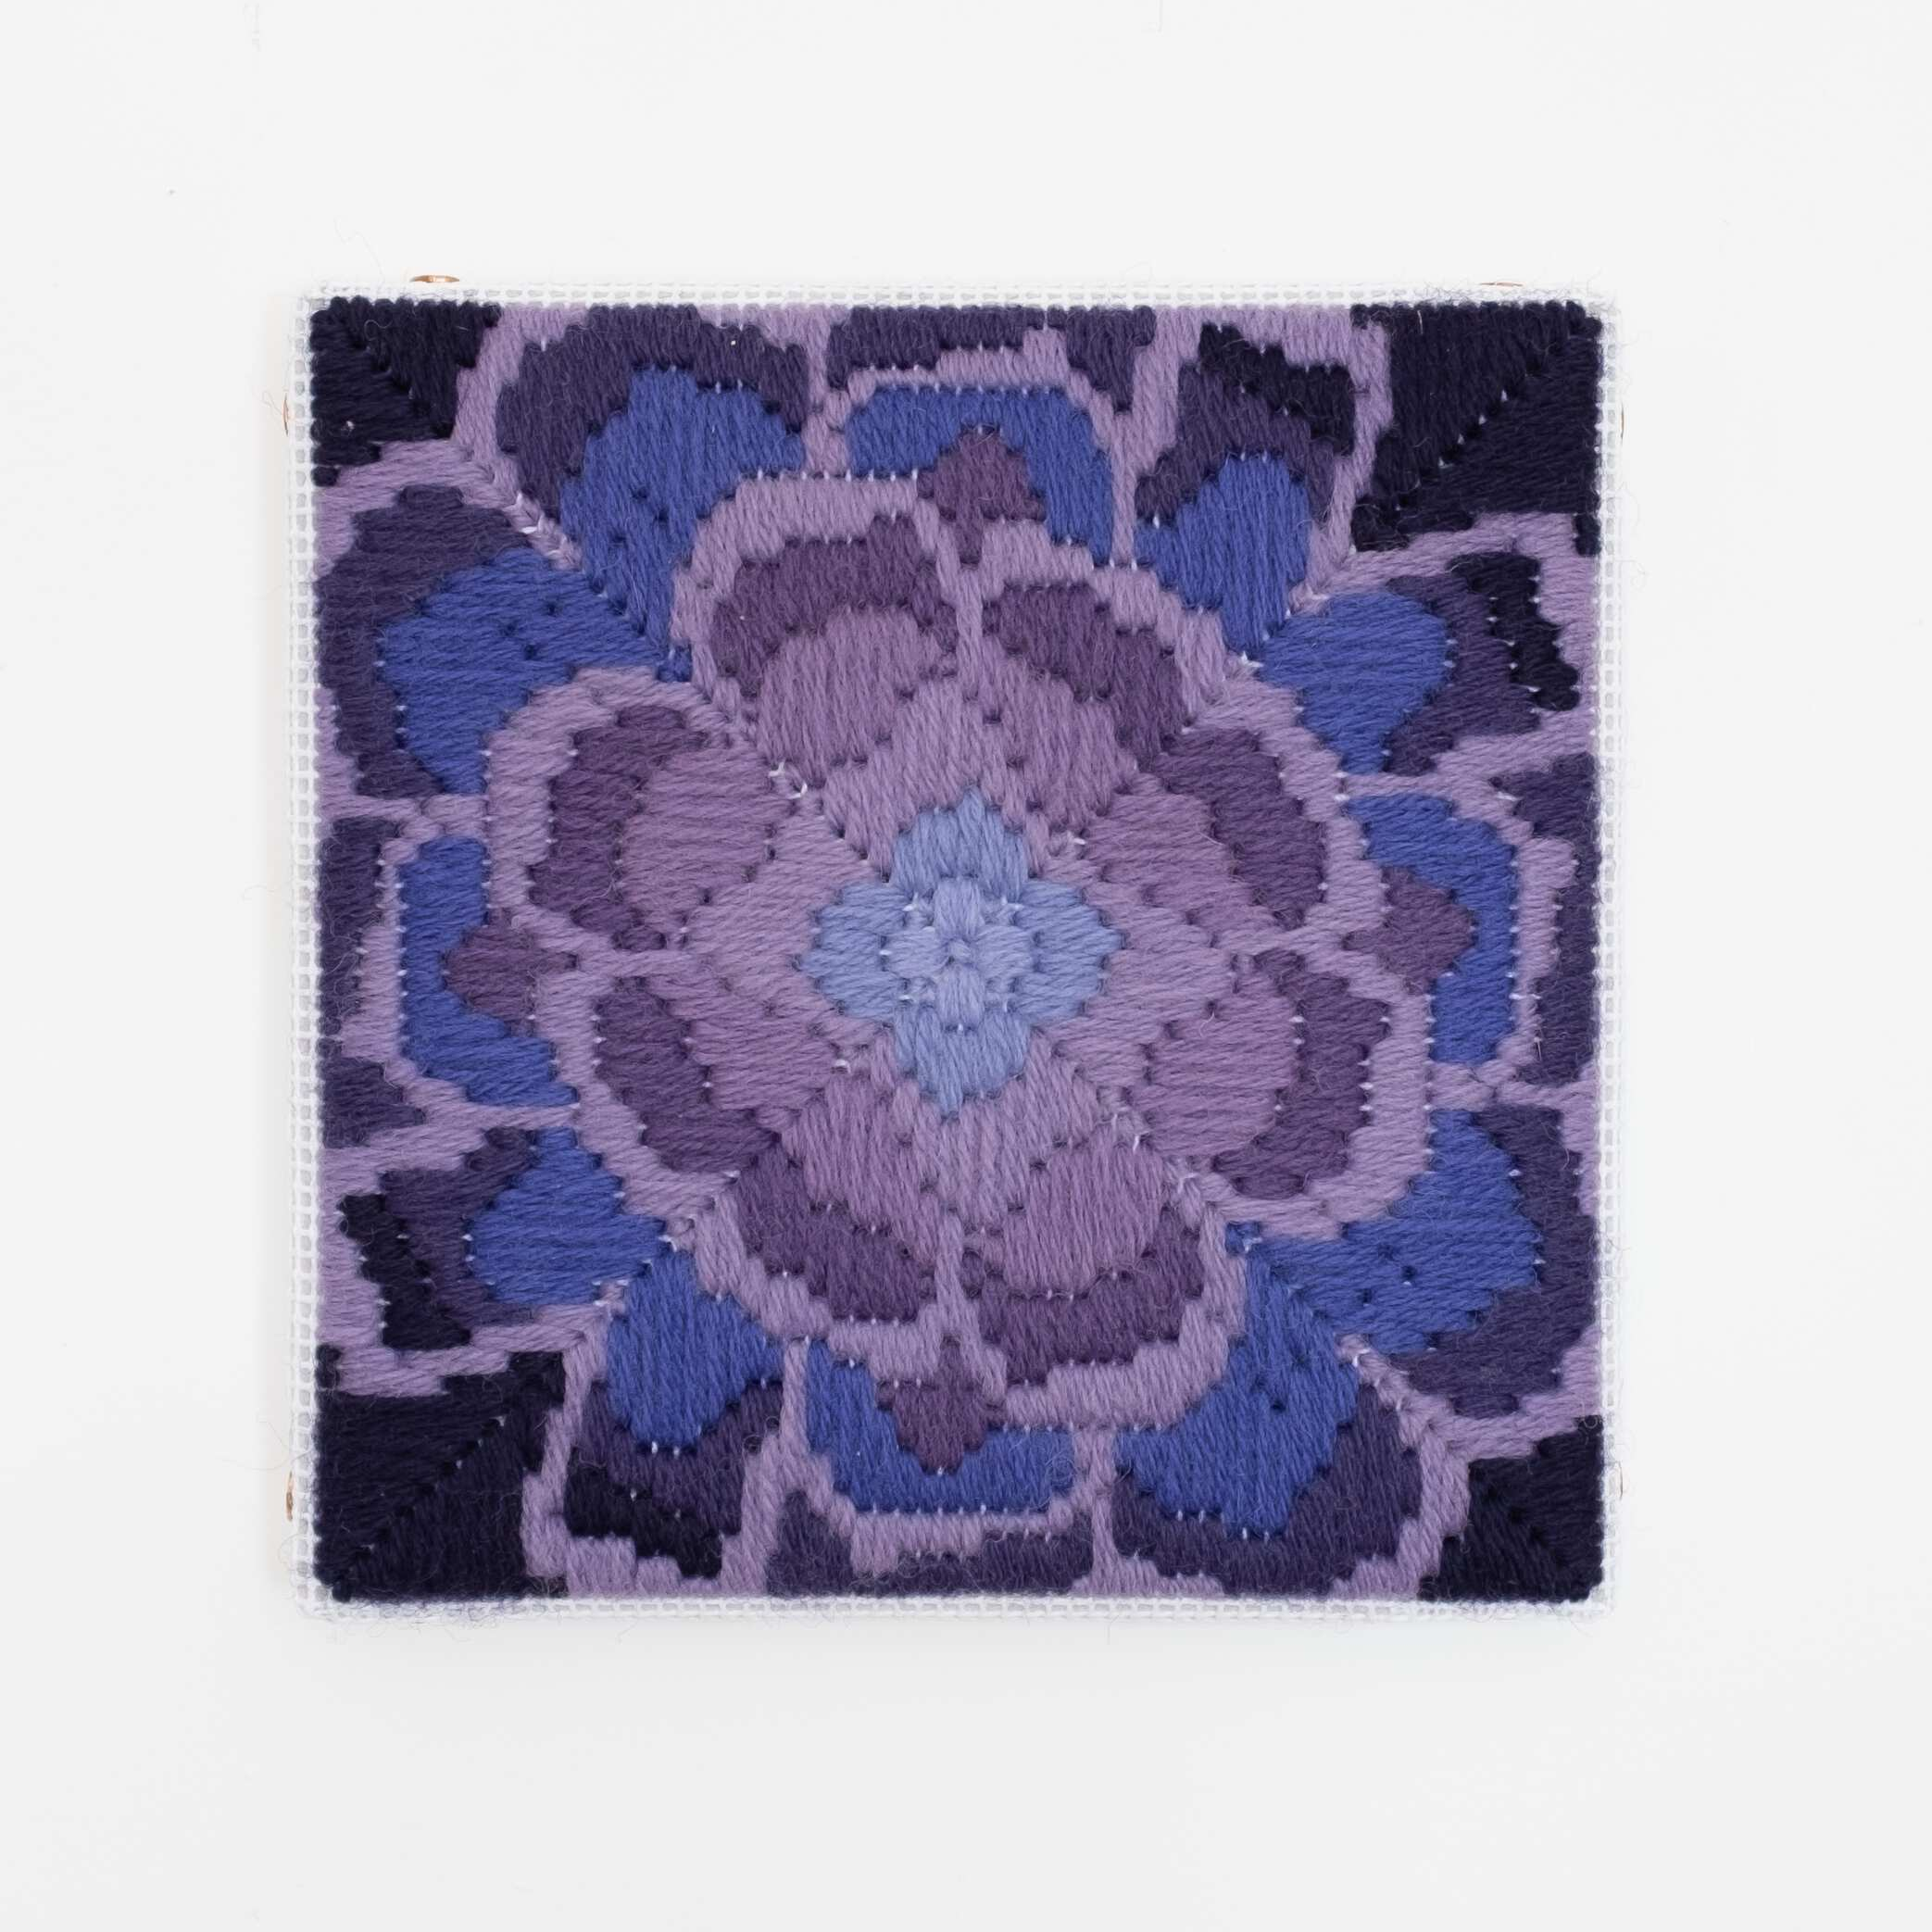 Depression Era [cast glass, purple], Hand-embroidered wool on canvas over panel, 2020